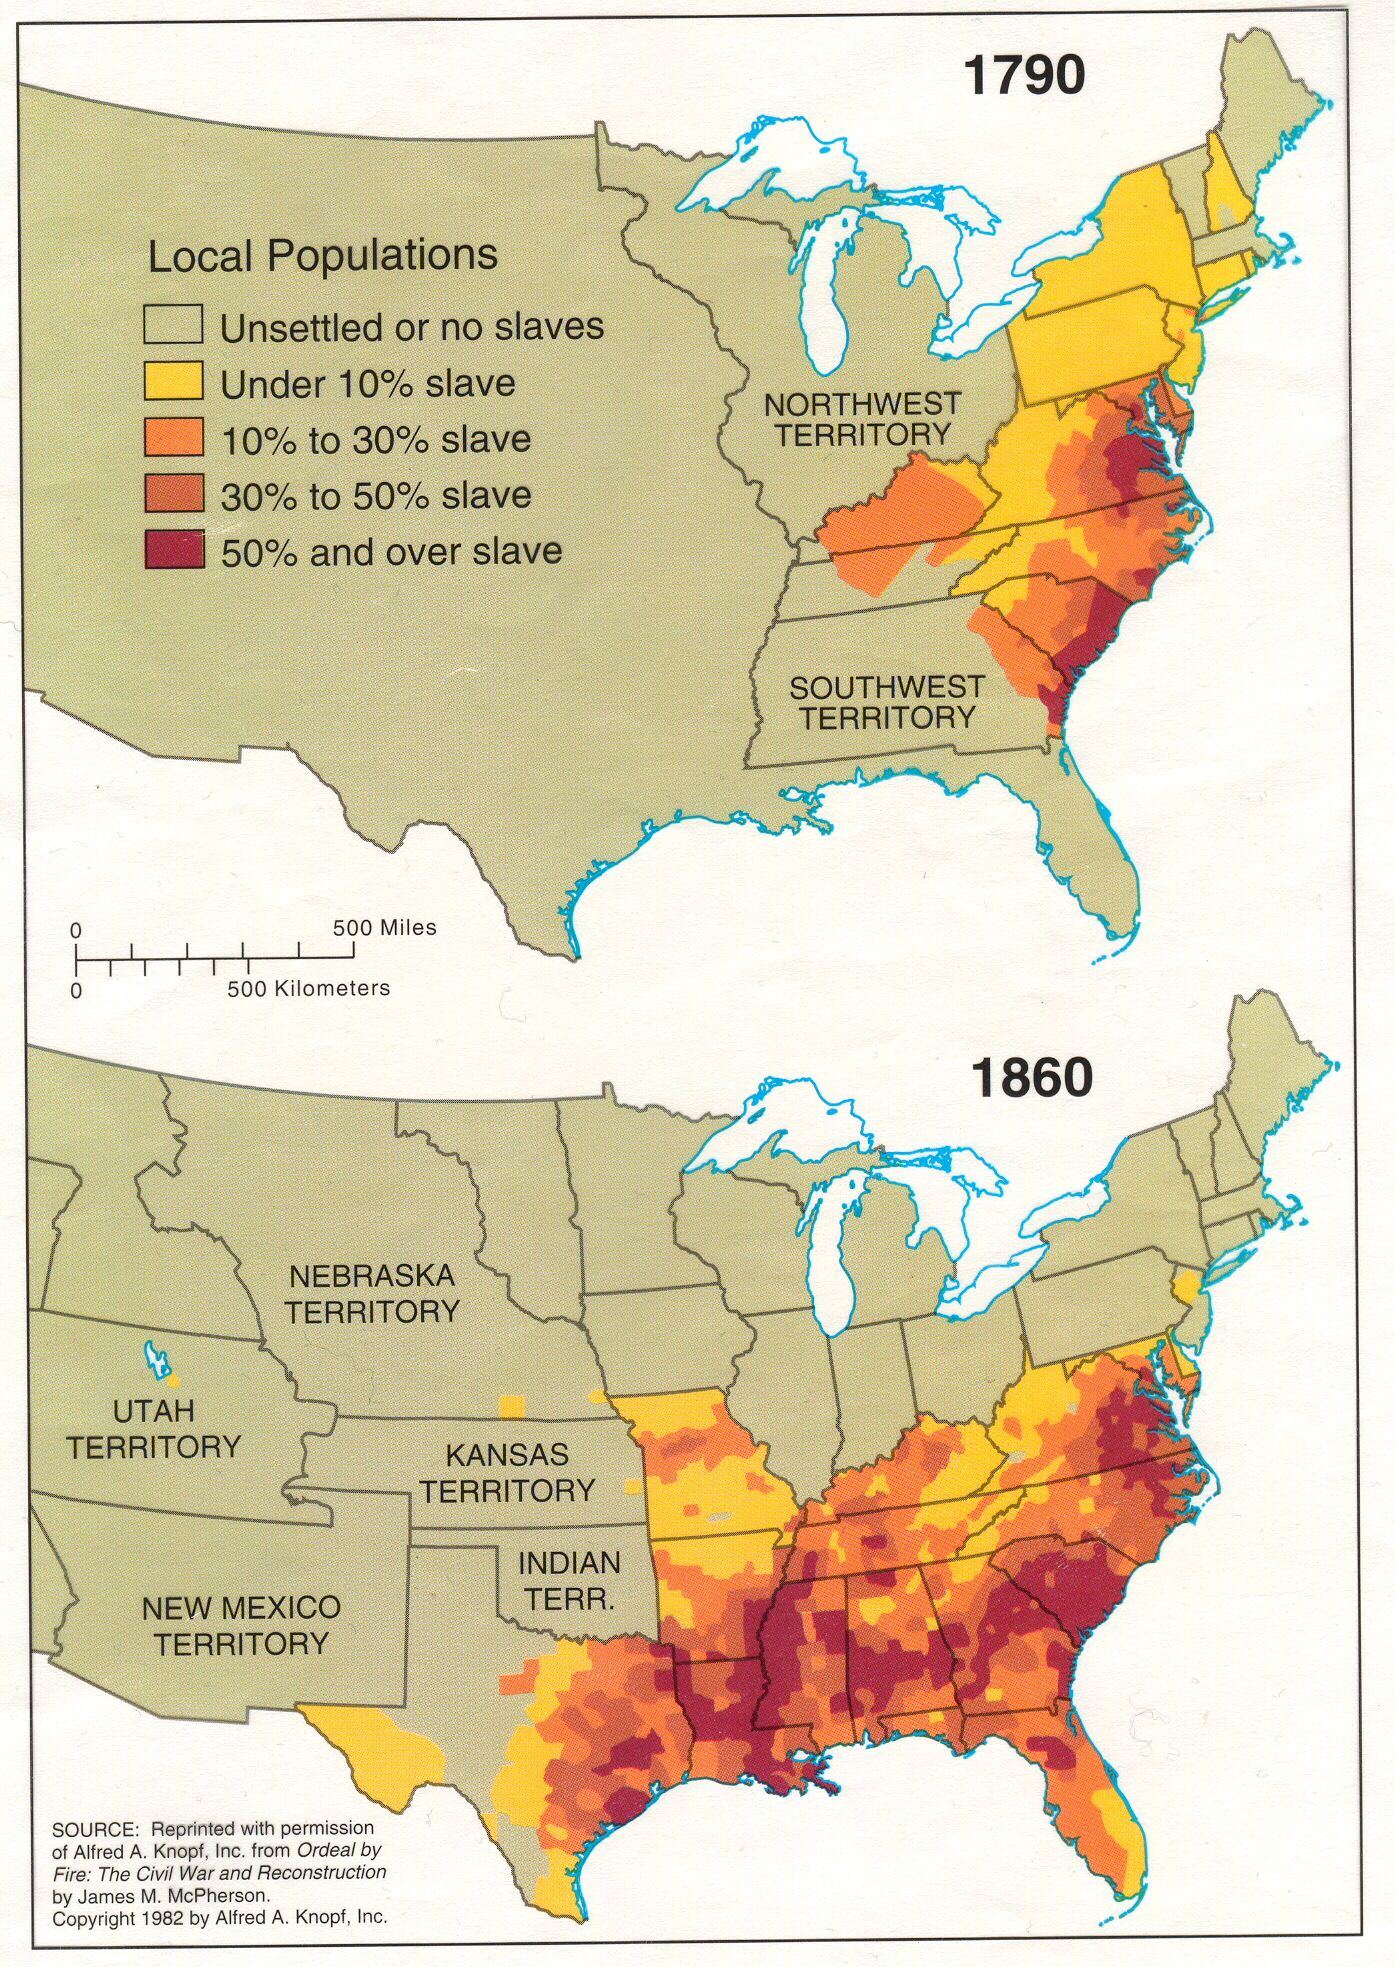 37 maps that explain the American Civil War | History | American ...